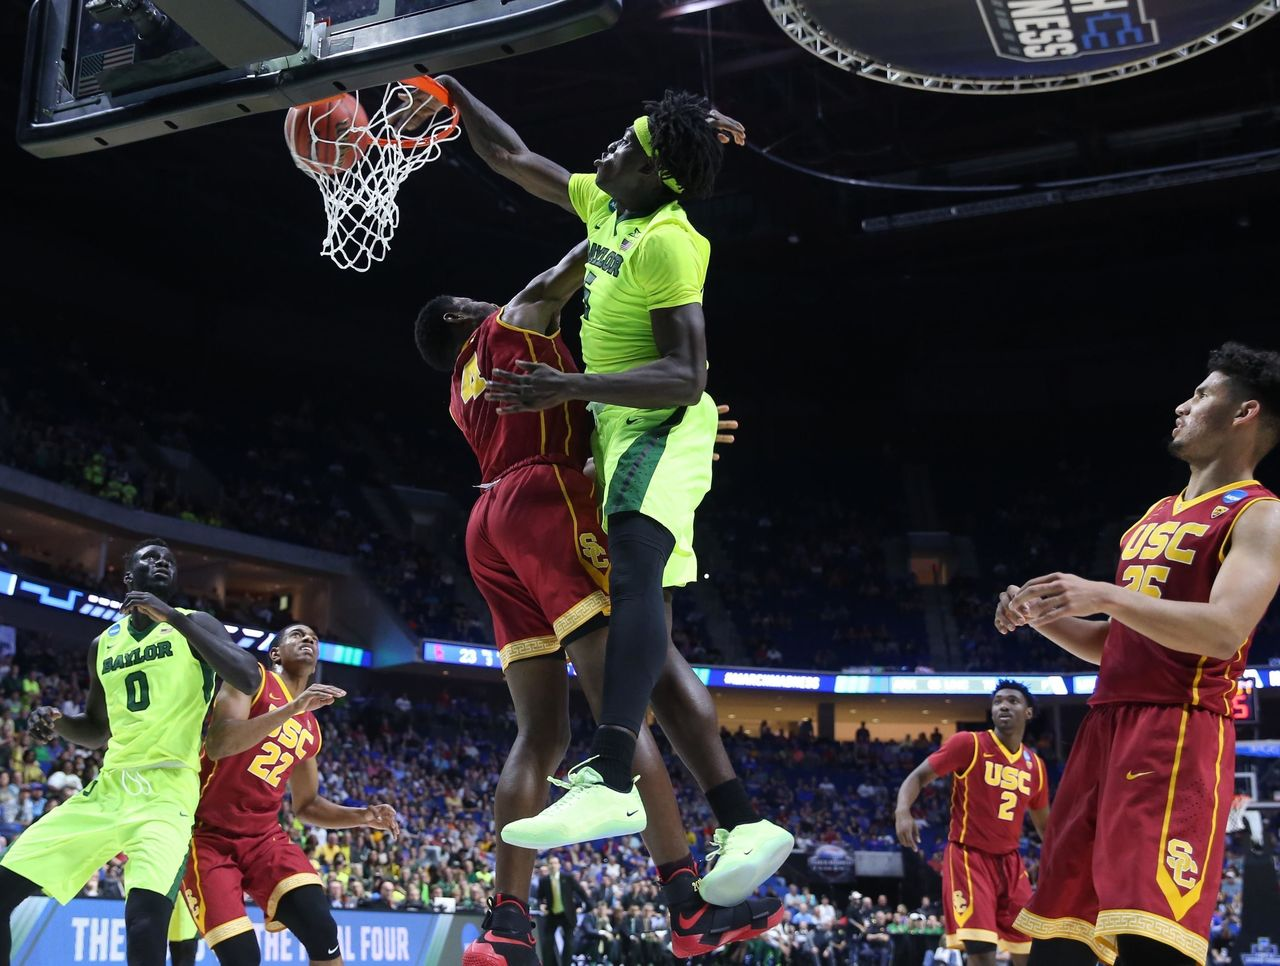 Cropped 2017 03 20t005536z 449495235 nocid rtrmadp 3 ncaa basketball ncaa tournament second round baylor vs usc